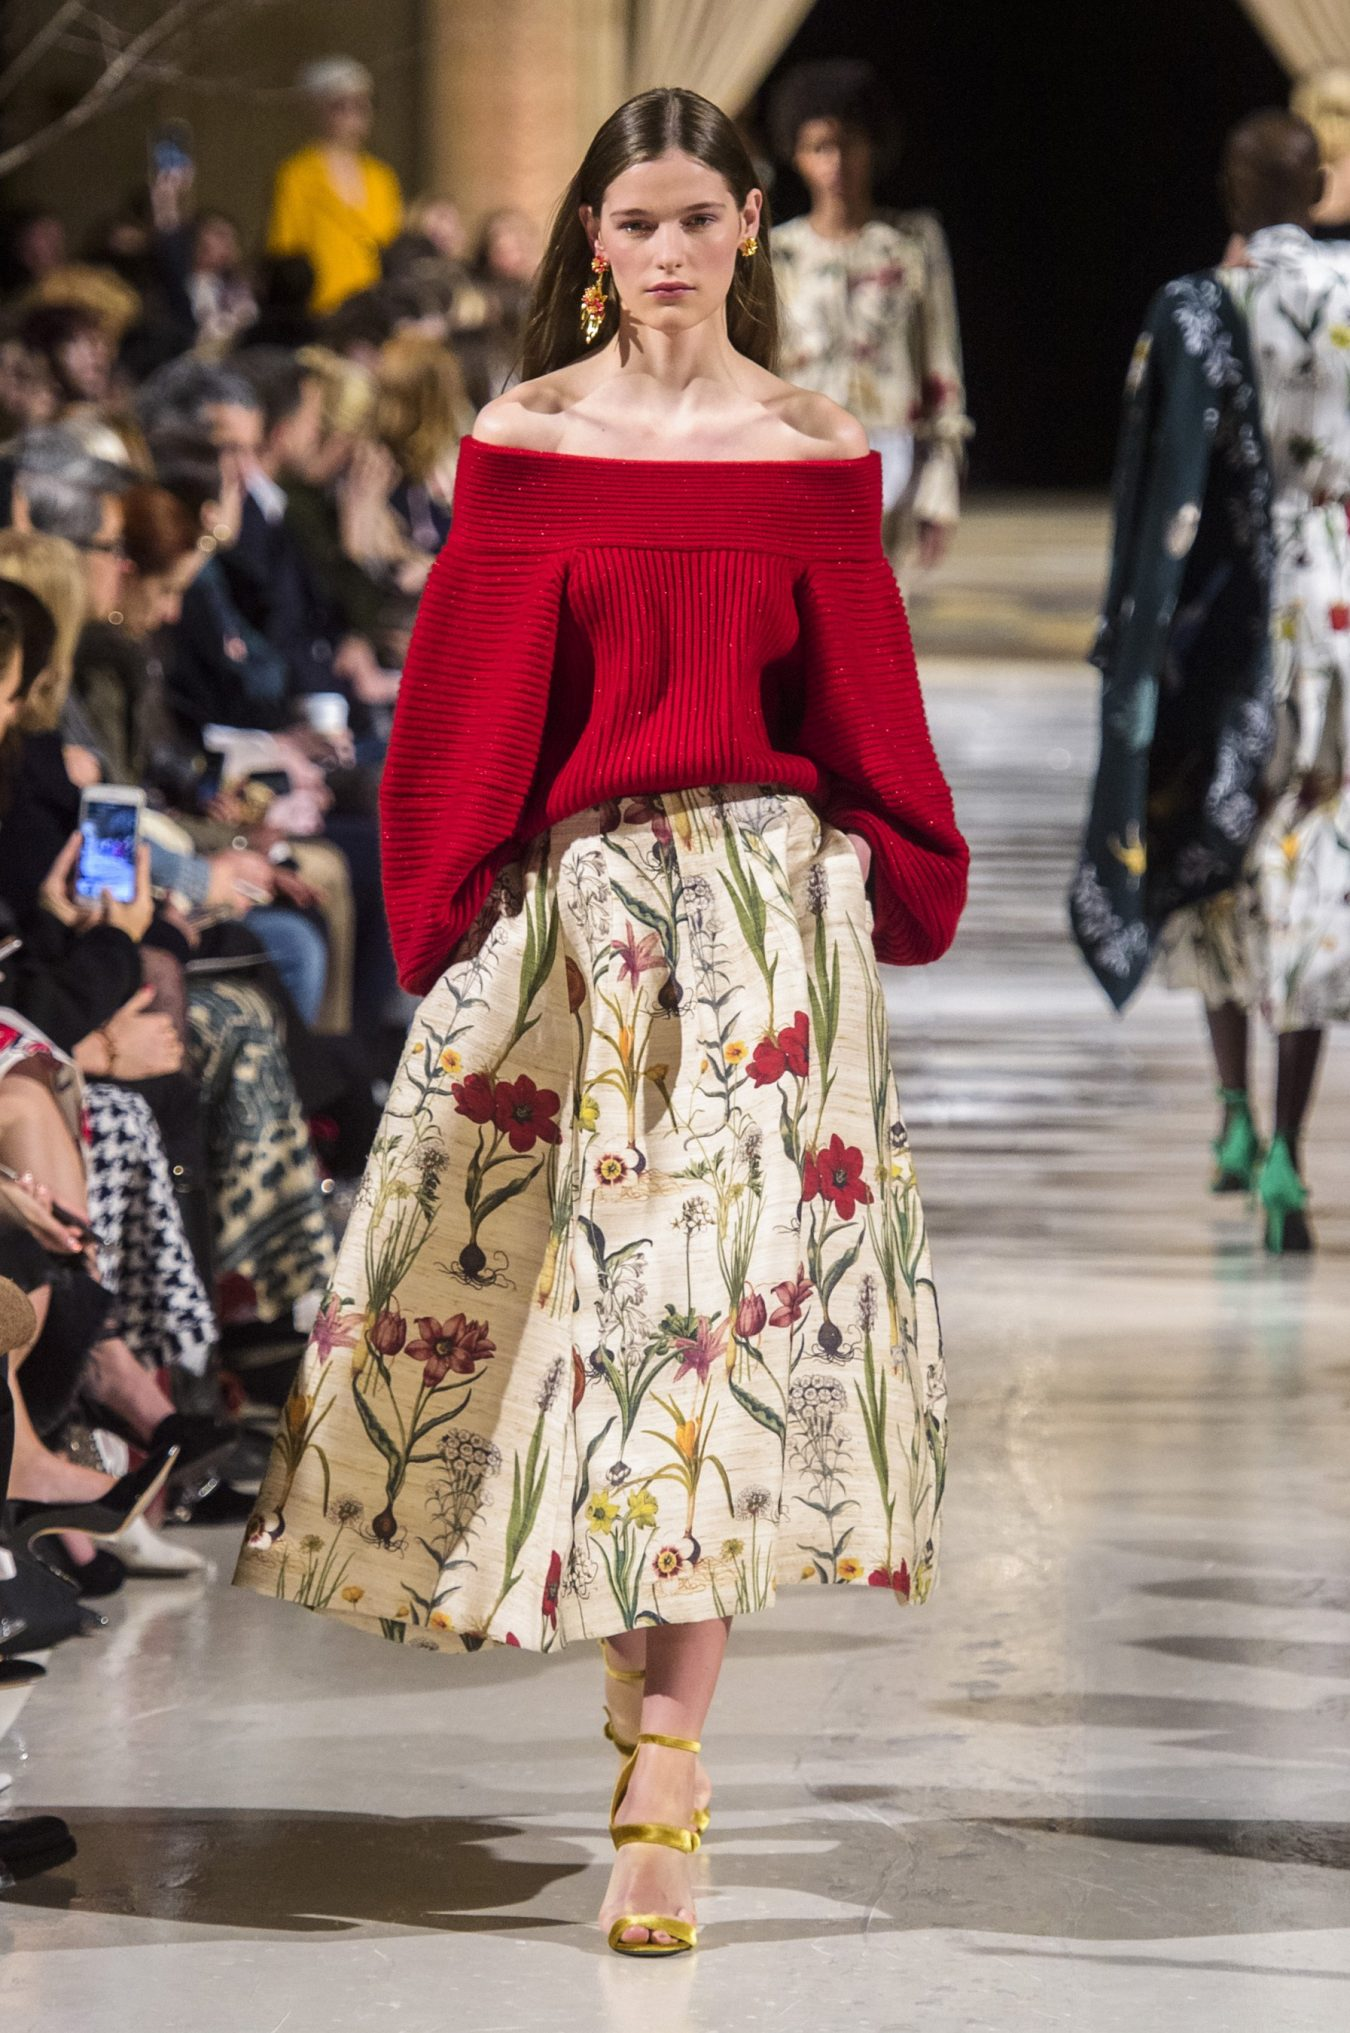 Oscar de la Renta Fall 2018 Fashion Show